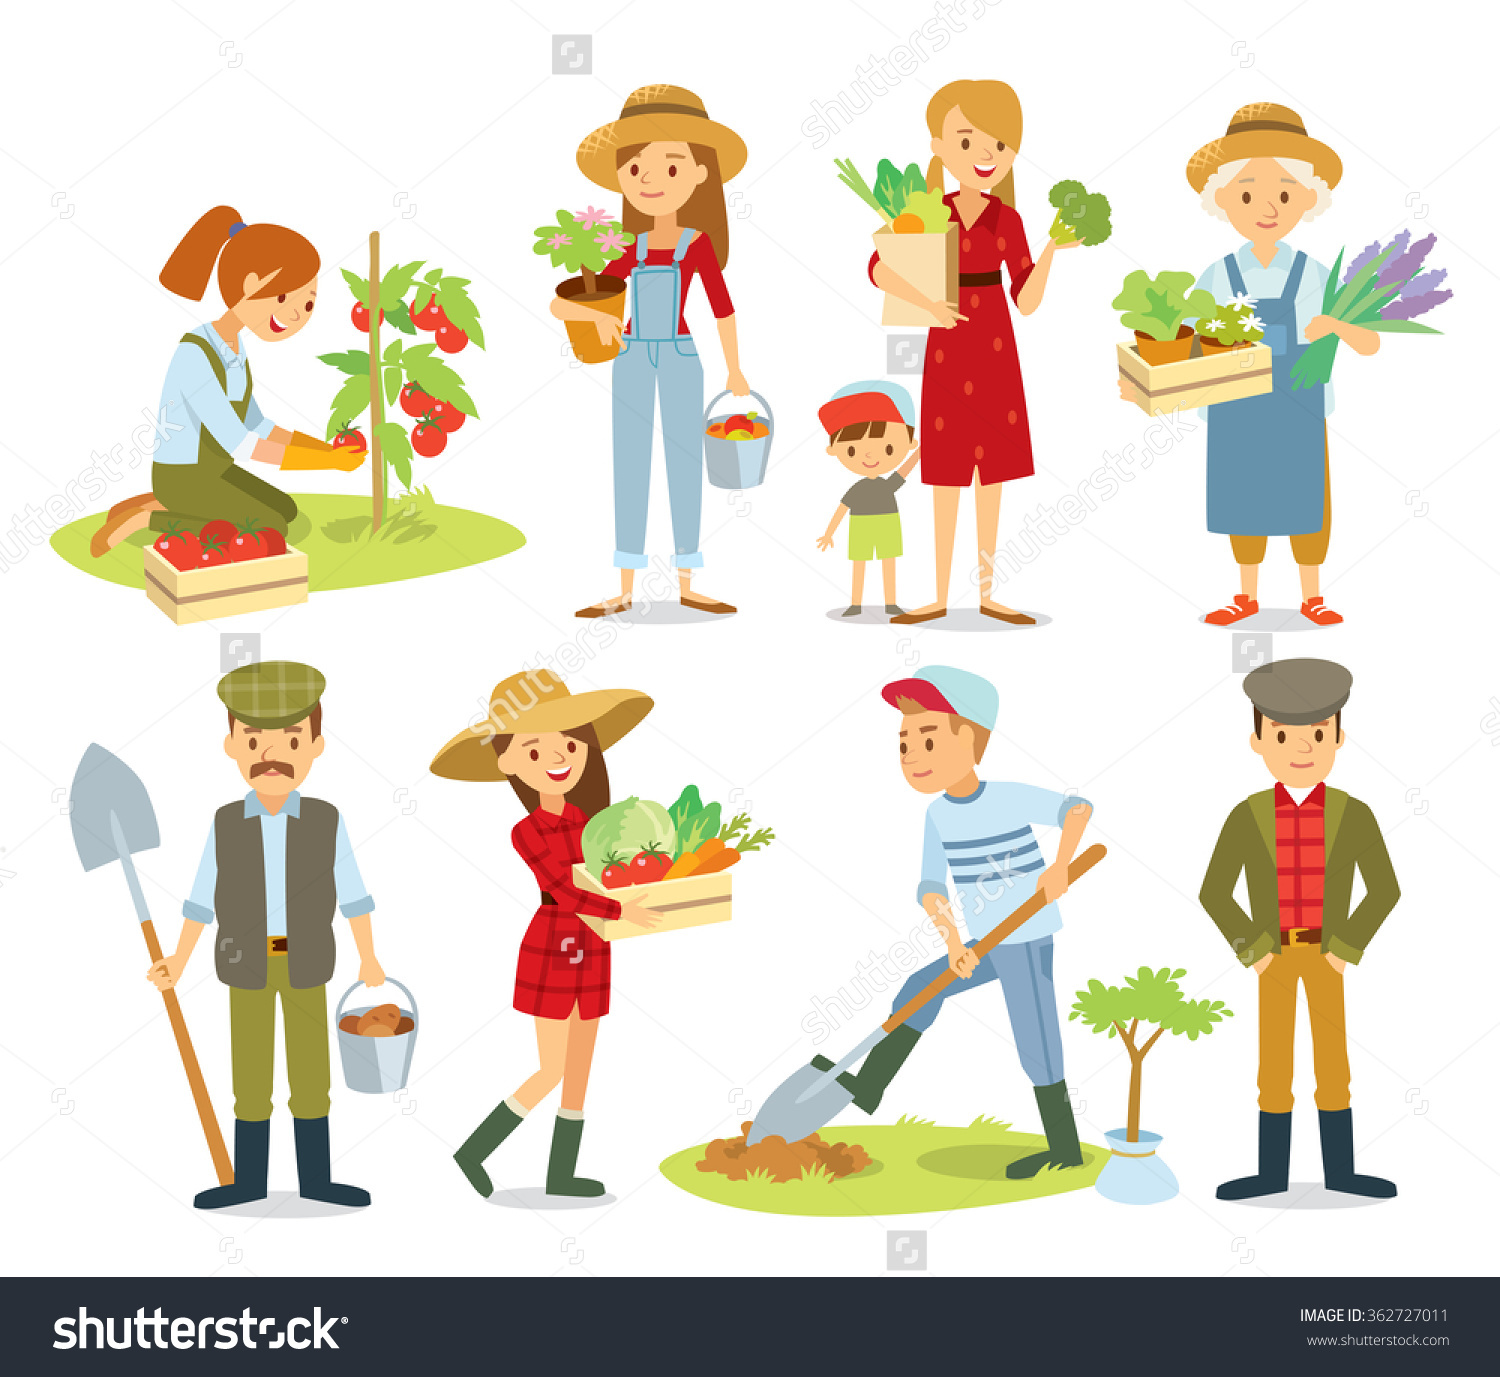 Vector Set Village People Organic Food Stock Vector 362727011.